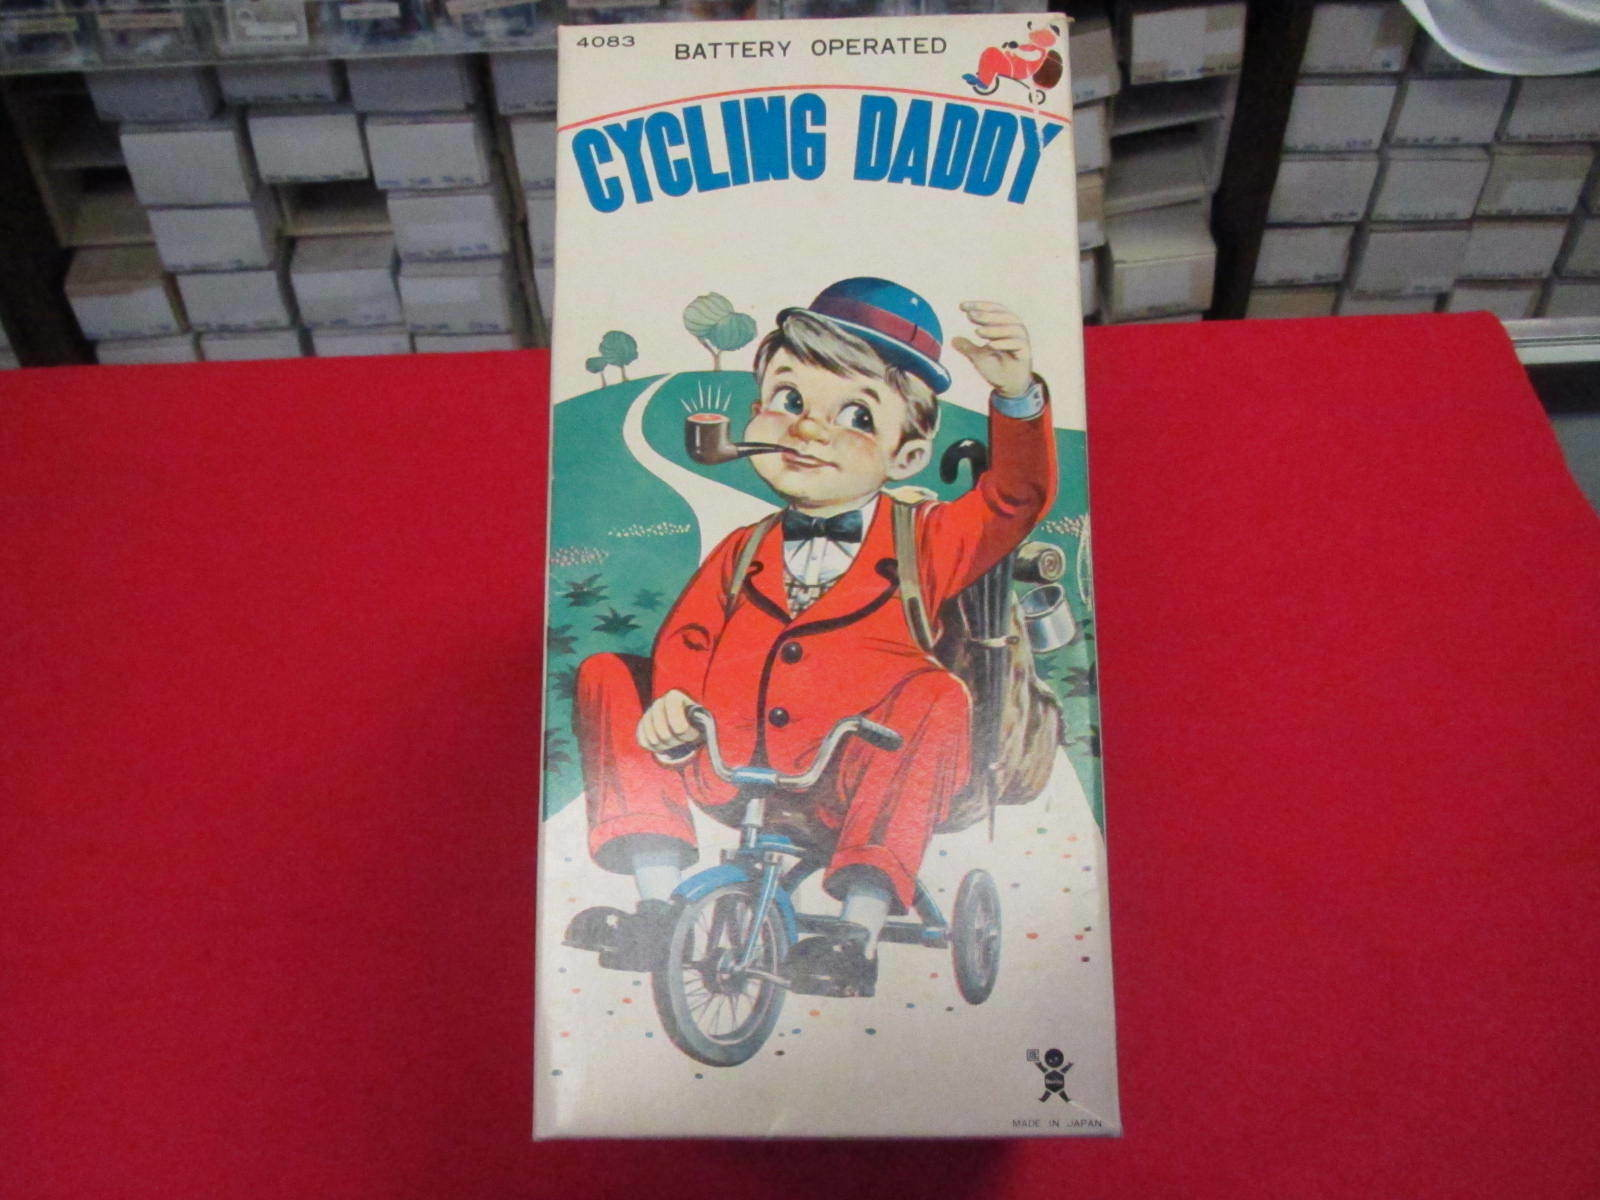 Vintage Bandai Cycling Daddy toy remains in original AWESOME box